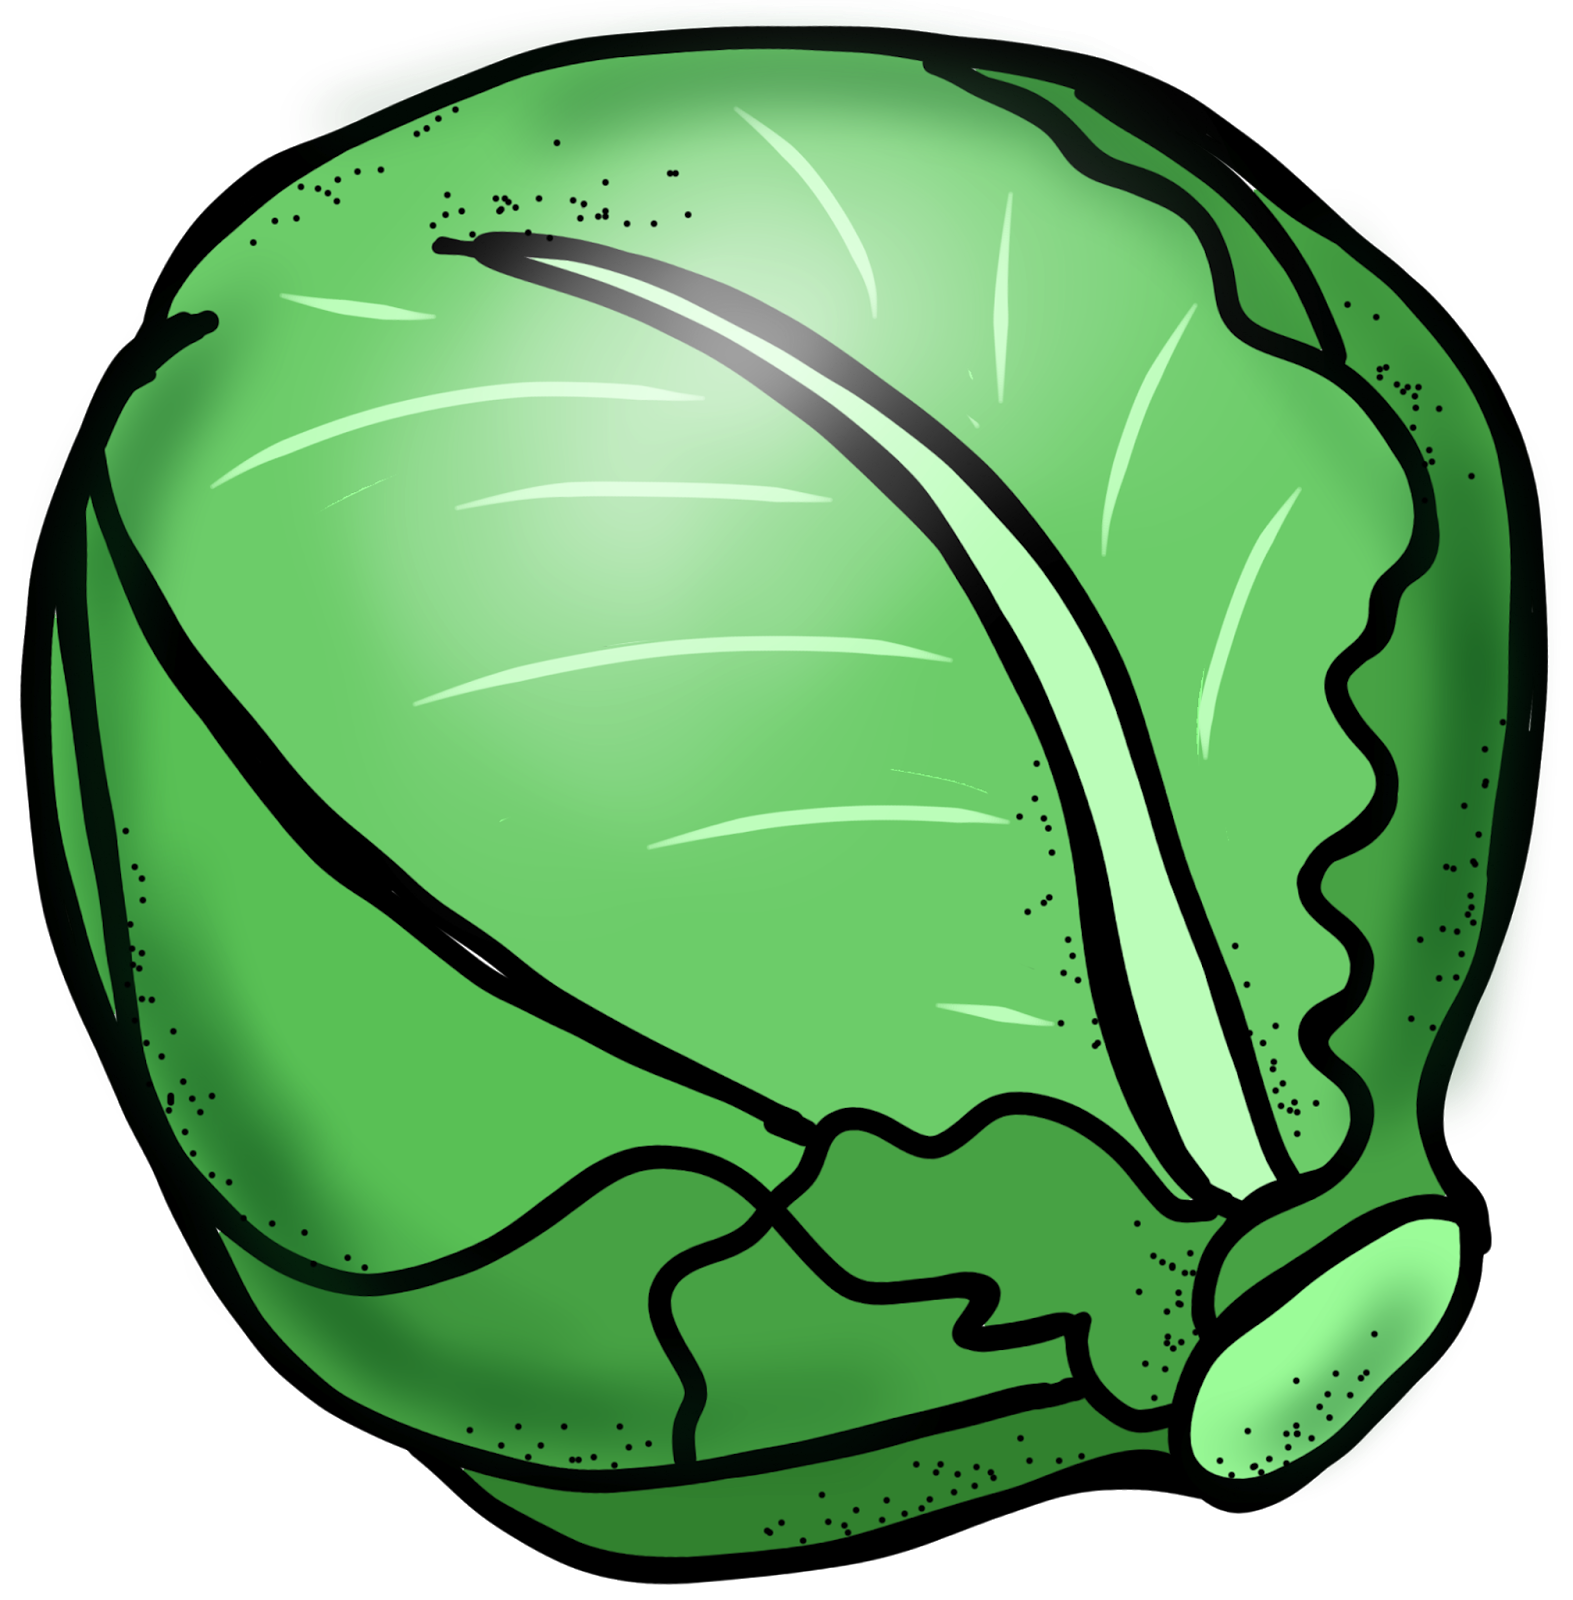 Clip Art - cute cabbage veget